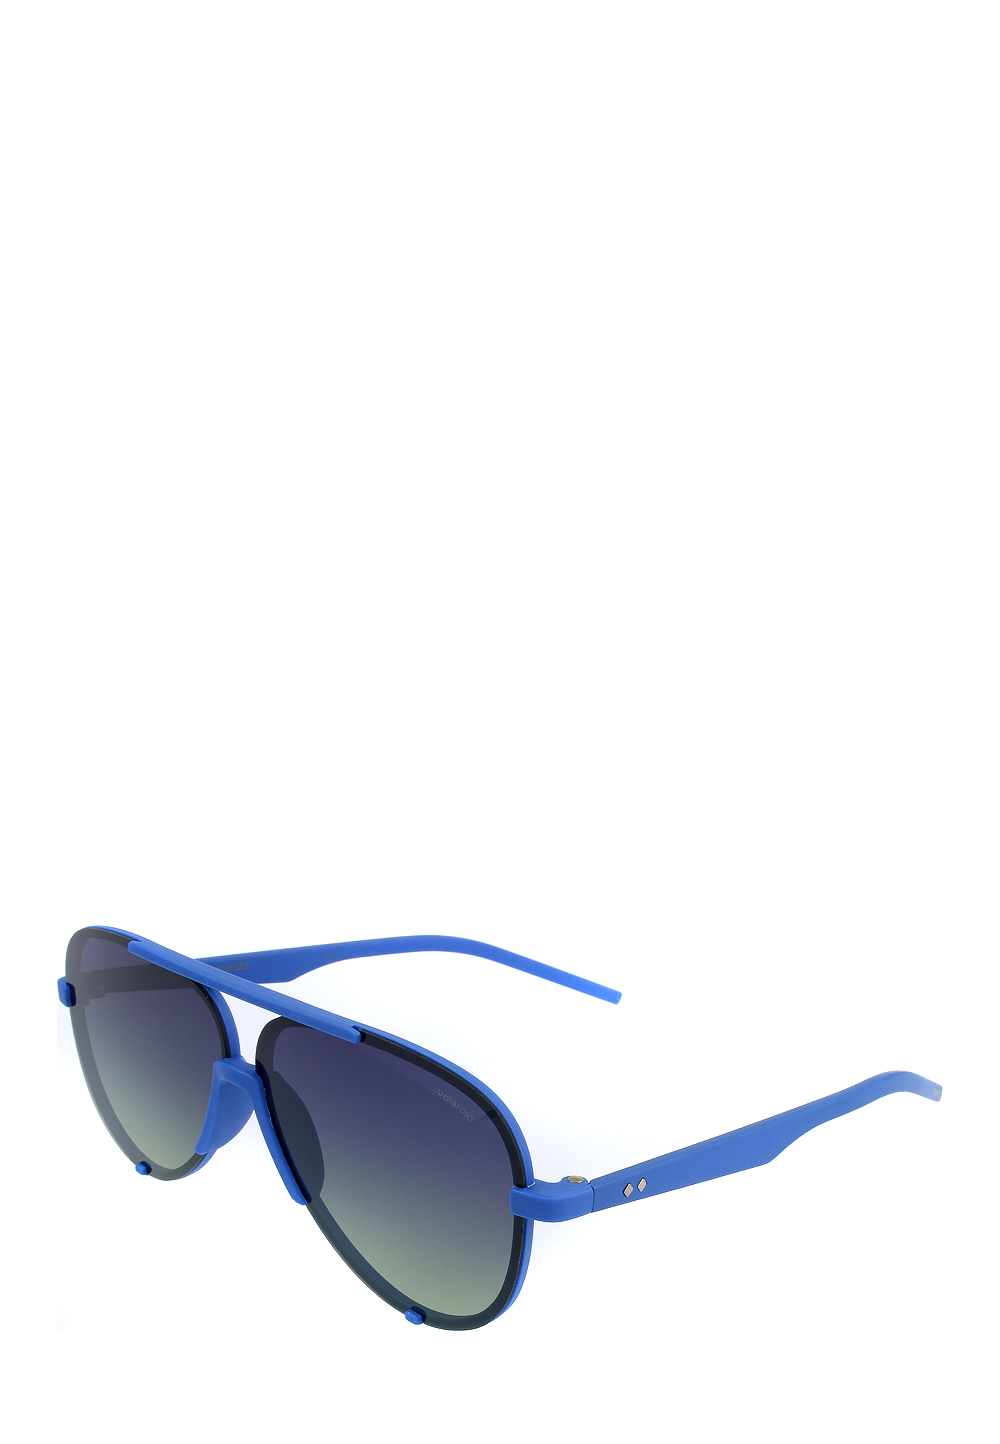 Sonnenbrille Pld6017/S, polarized, Uv400, blue blau